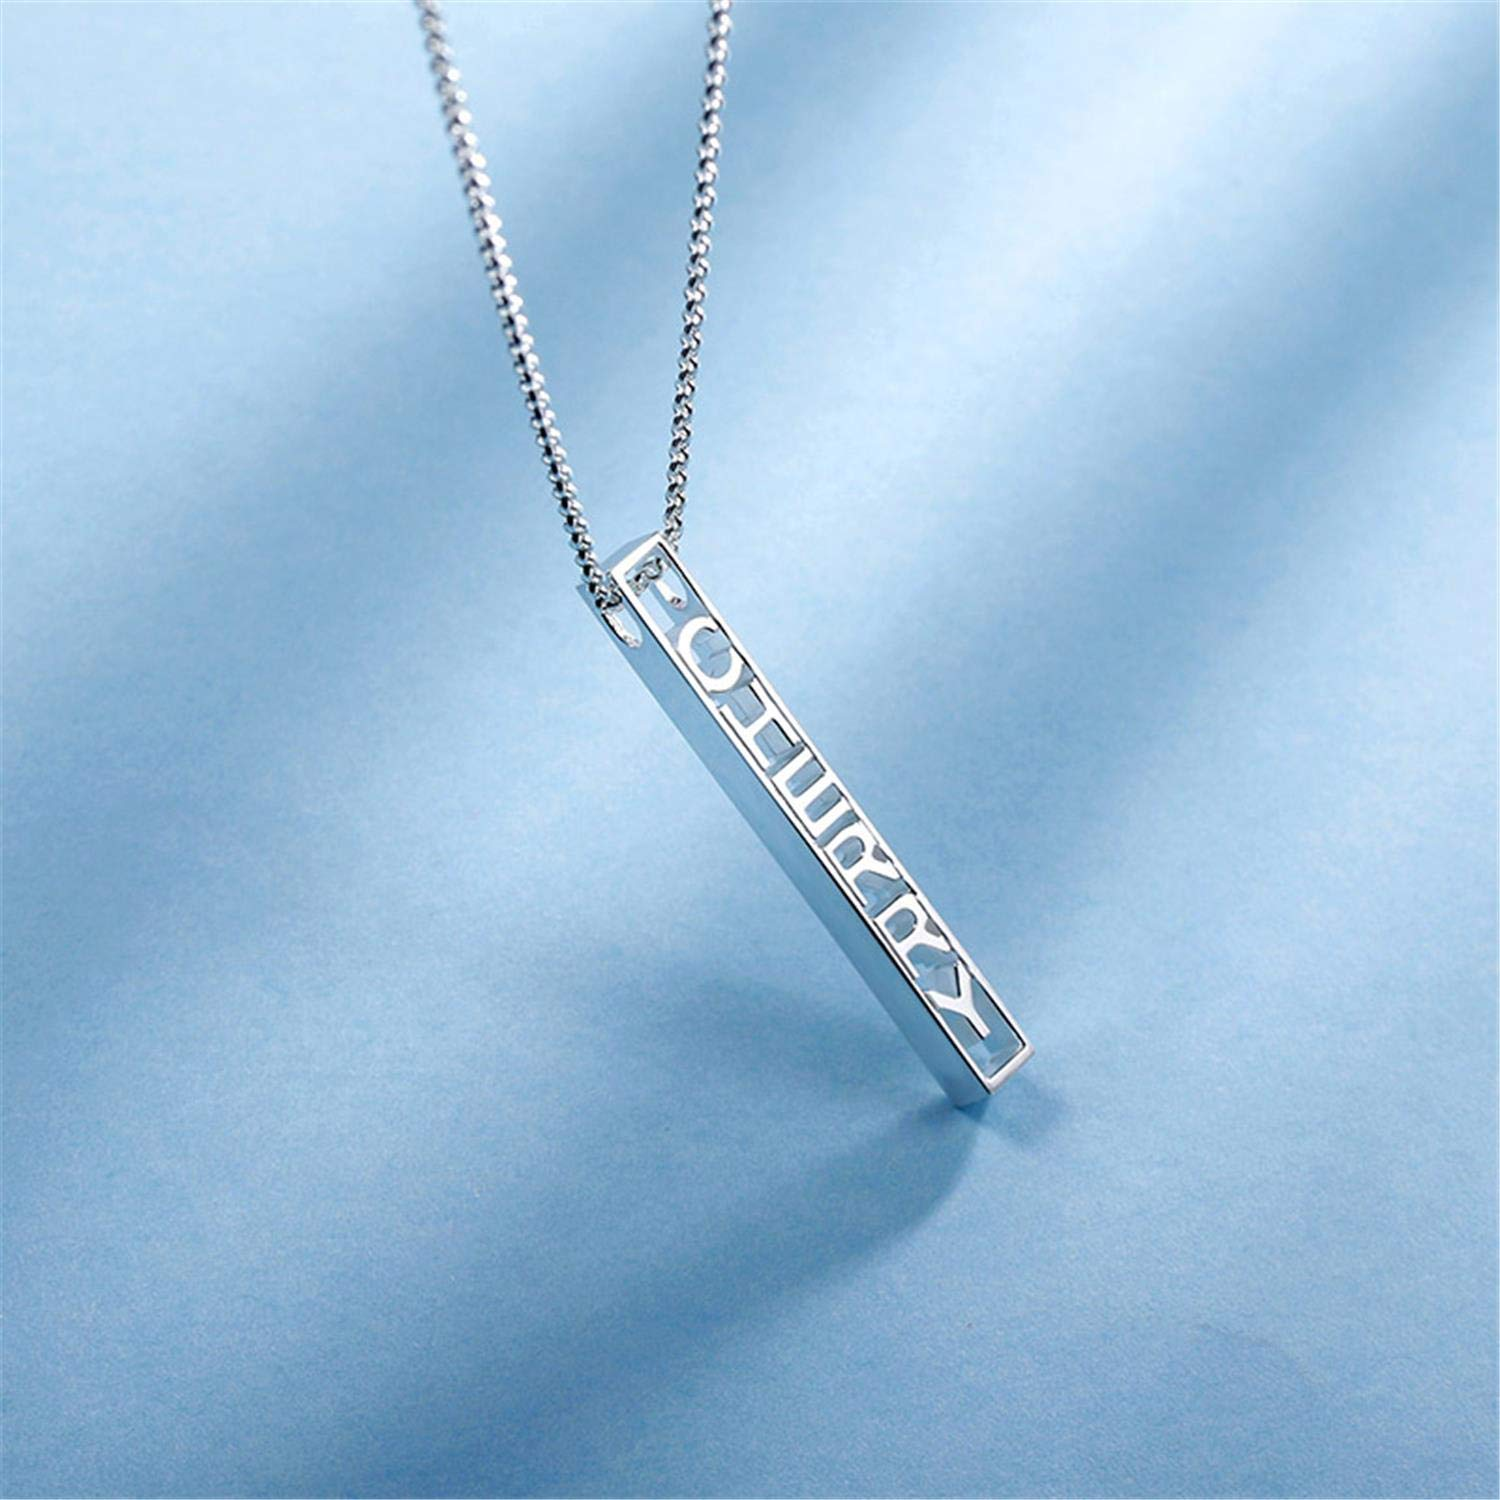 Getname Necklace Sterling Silver 3D Hollow Out Bar Necklace Personalized Hand Stamped Necklace for Womens